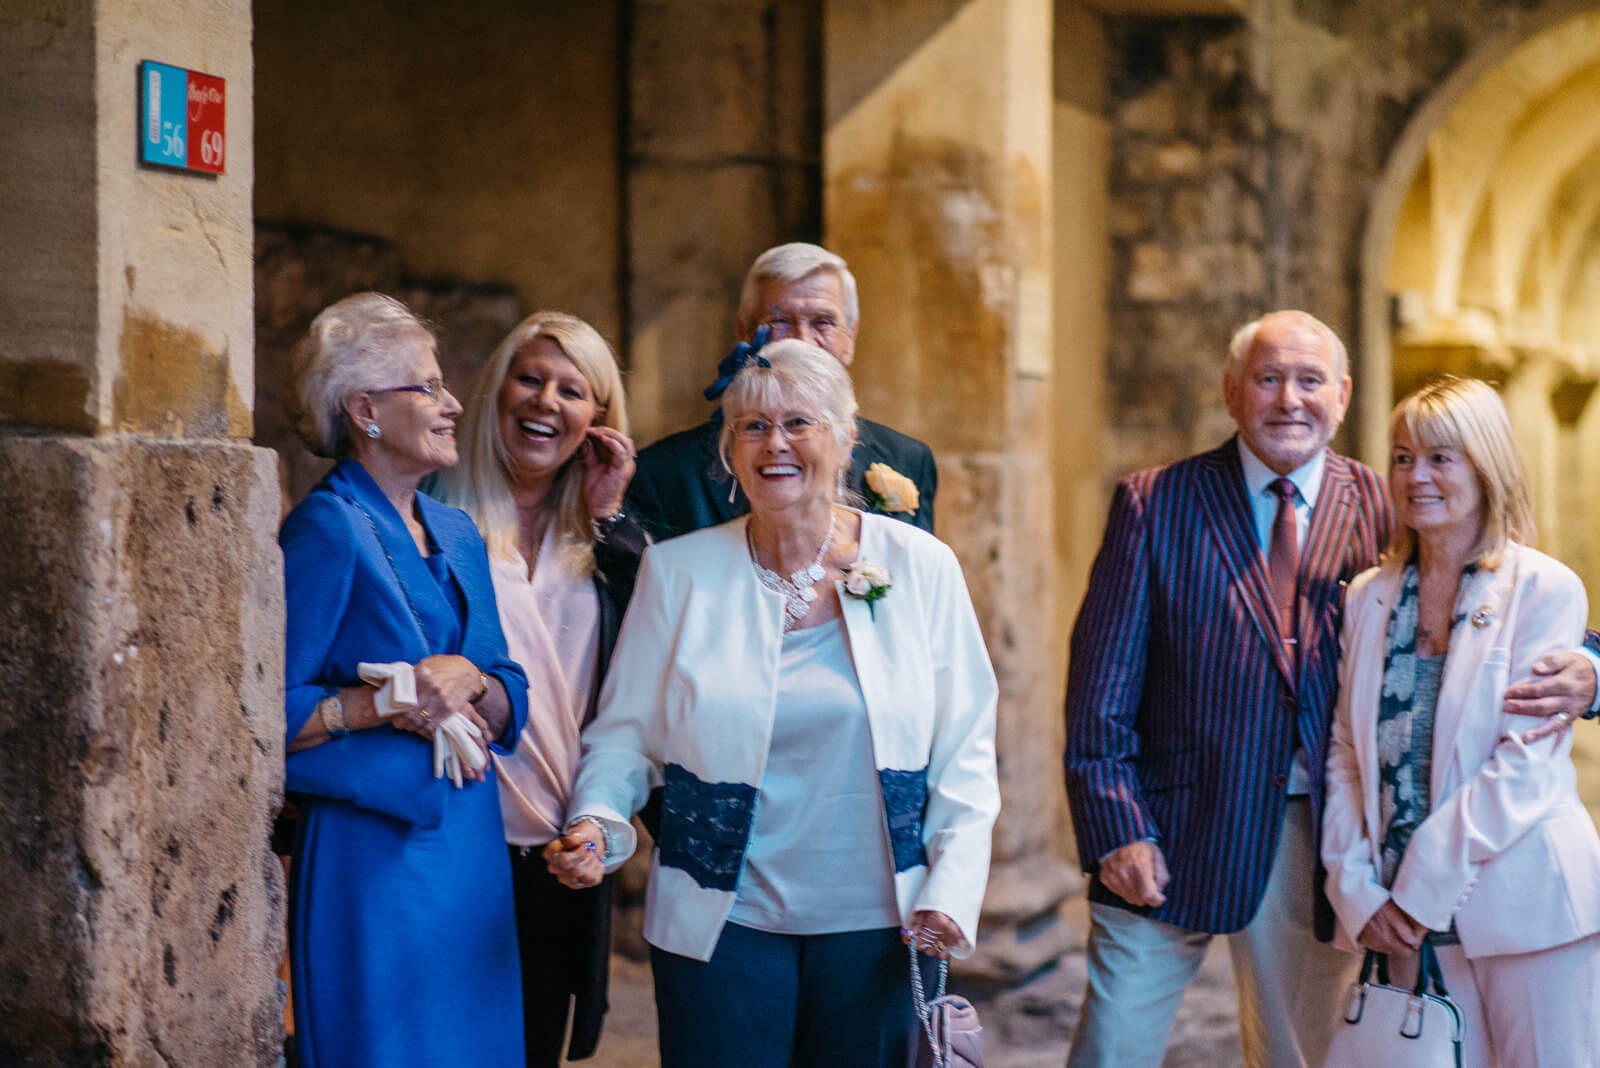 Guests laughing ahead of ceremony